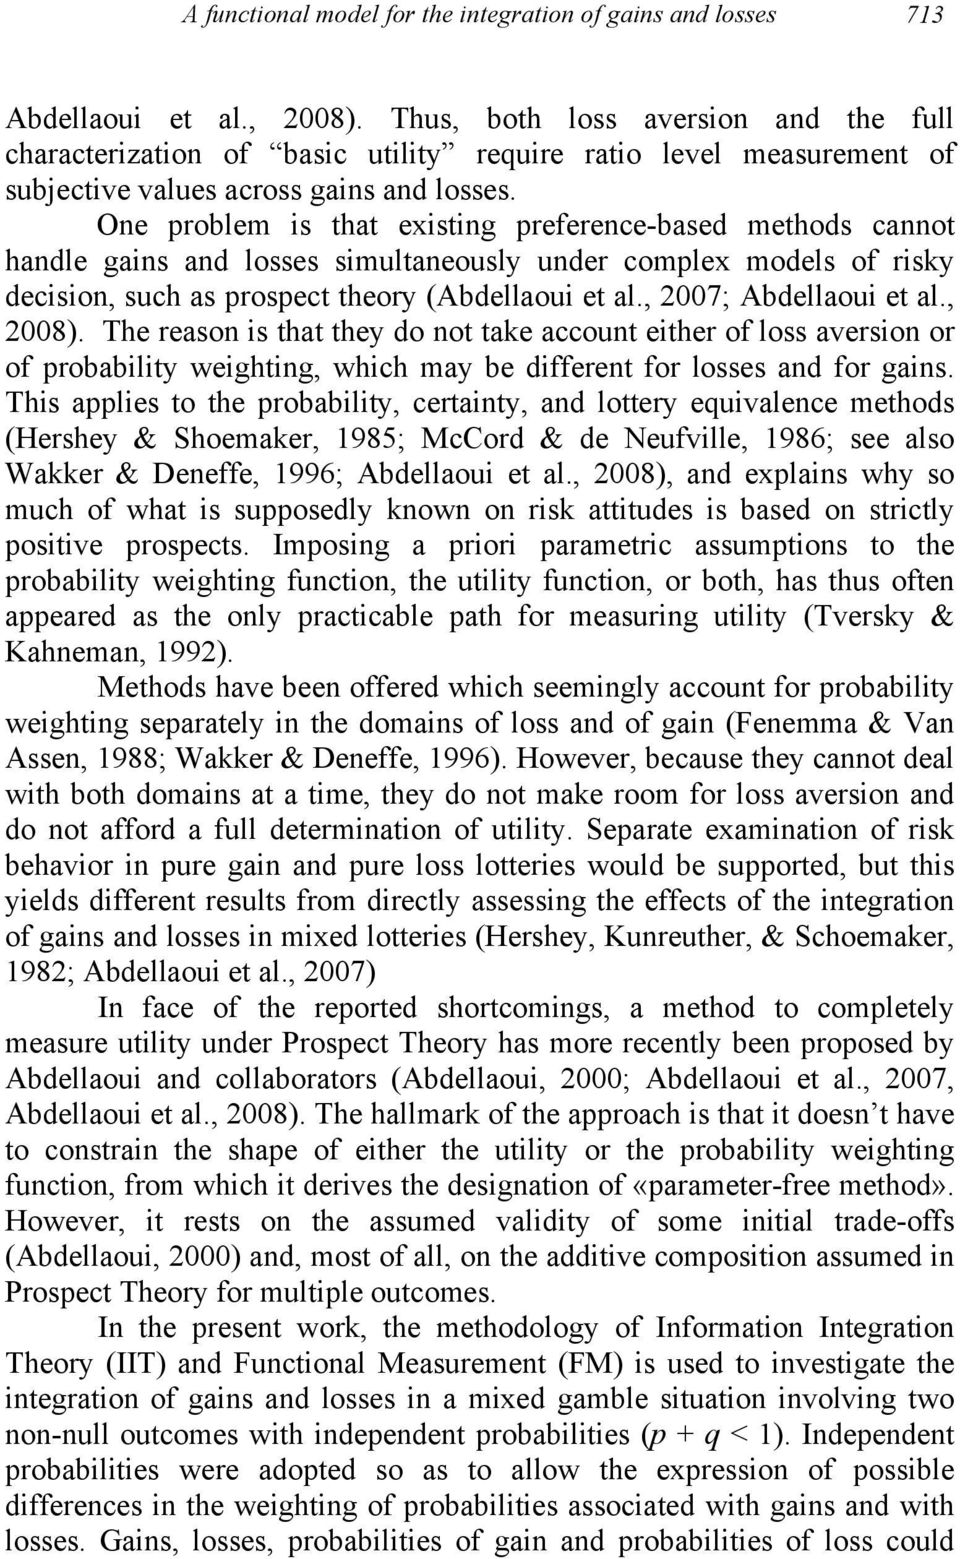 One problem is that existing preference-based methods cannot handle gains and losses simultaneously under complex models of risky decision, such as prospect theory (Abdellaoui et al.